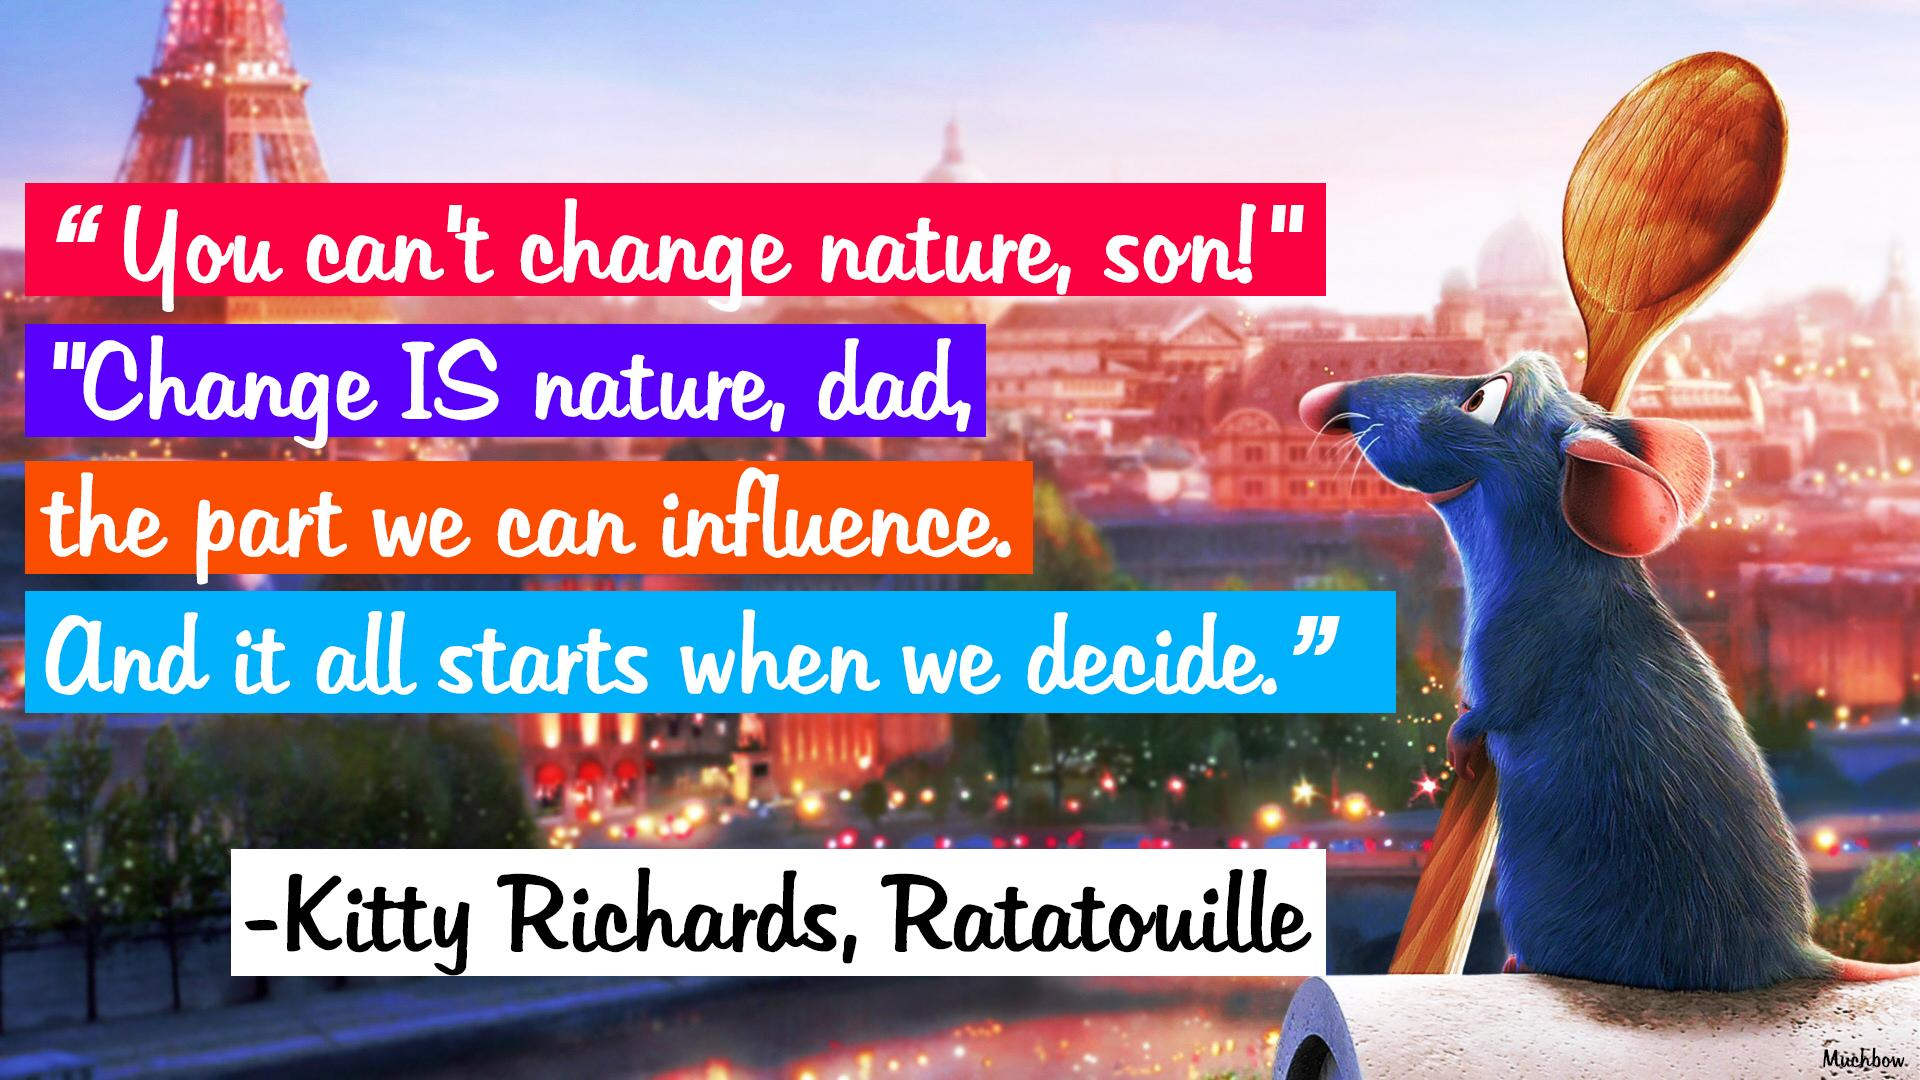 """You can't change nature, son!"" ""Change IS nature, dad, the part we can influence. And it all starts when we decide."" ― Kitty Richards, Ratatouille [1920×1080] [OC]"